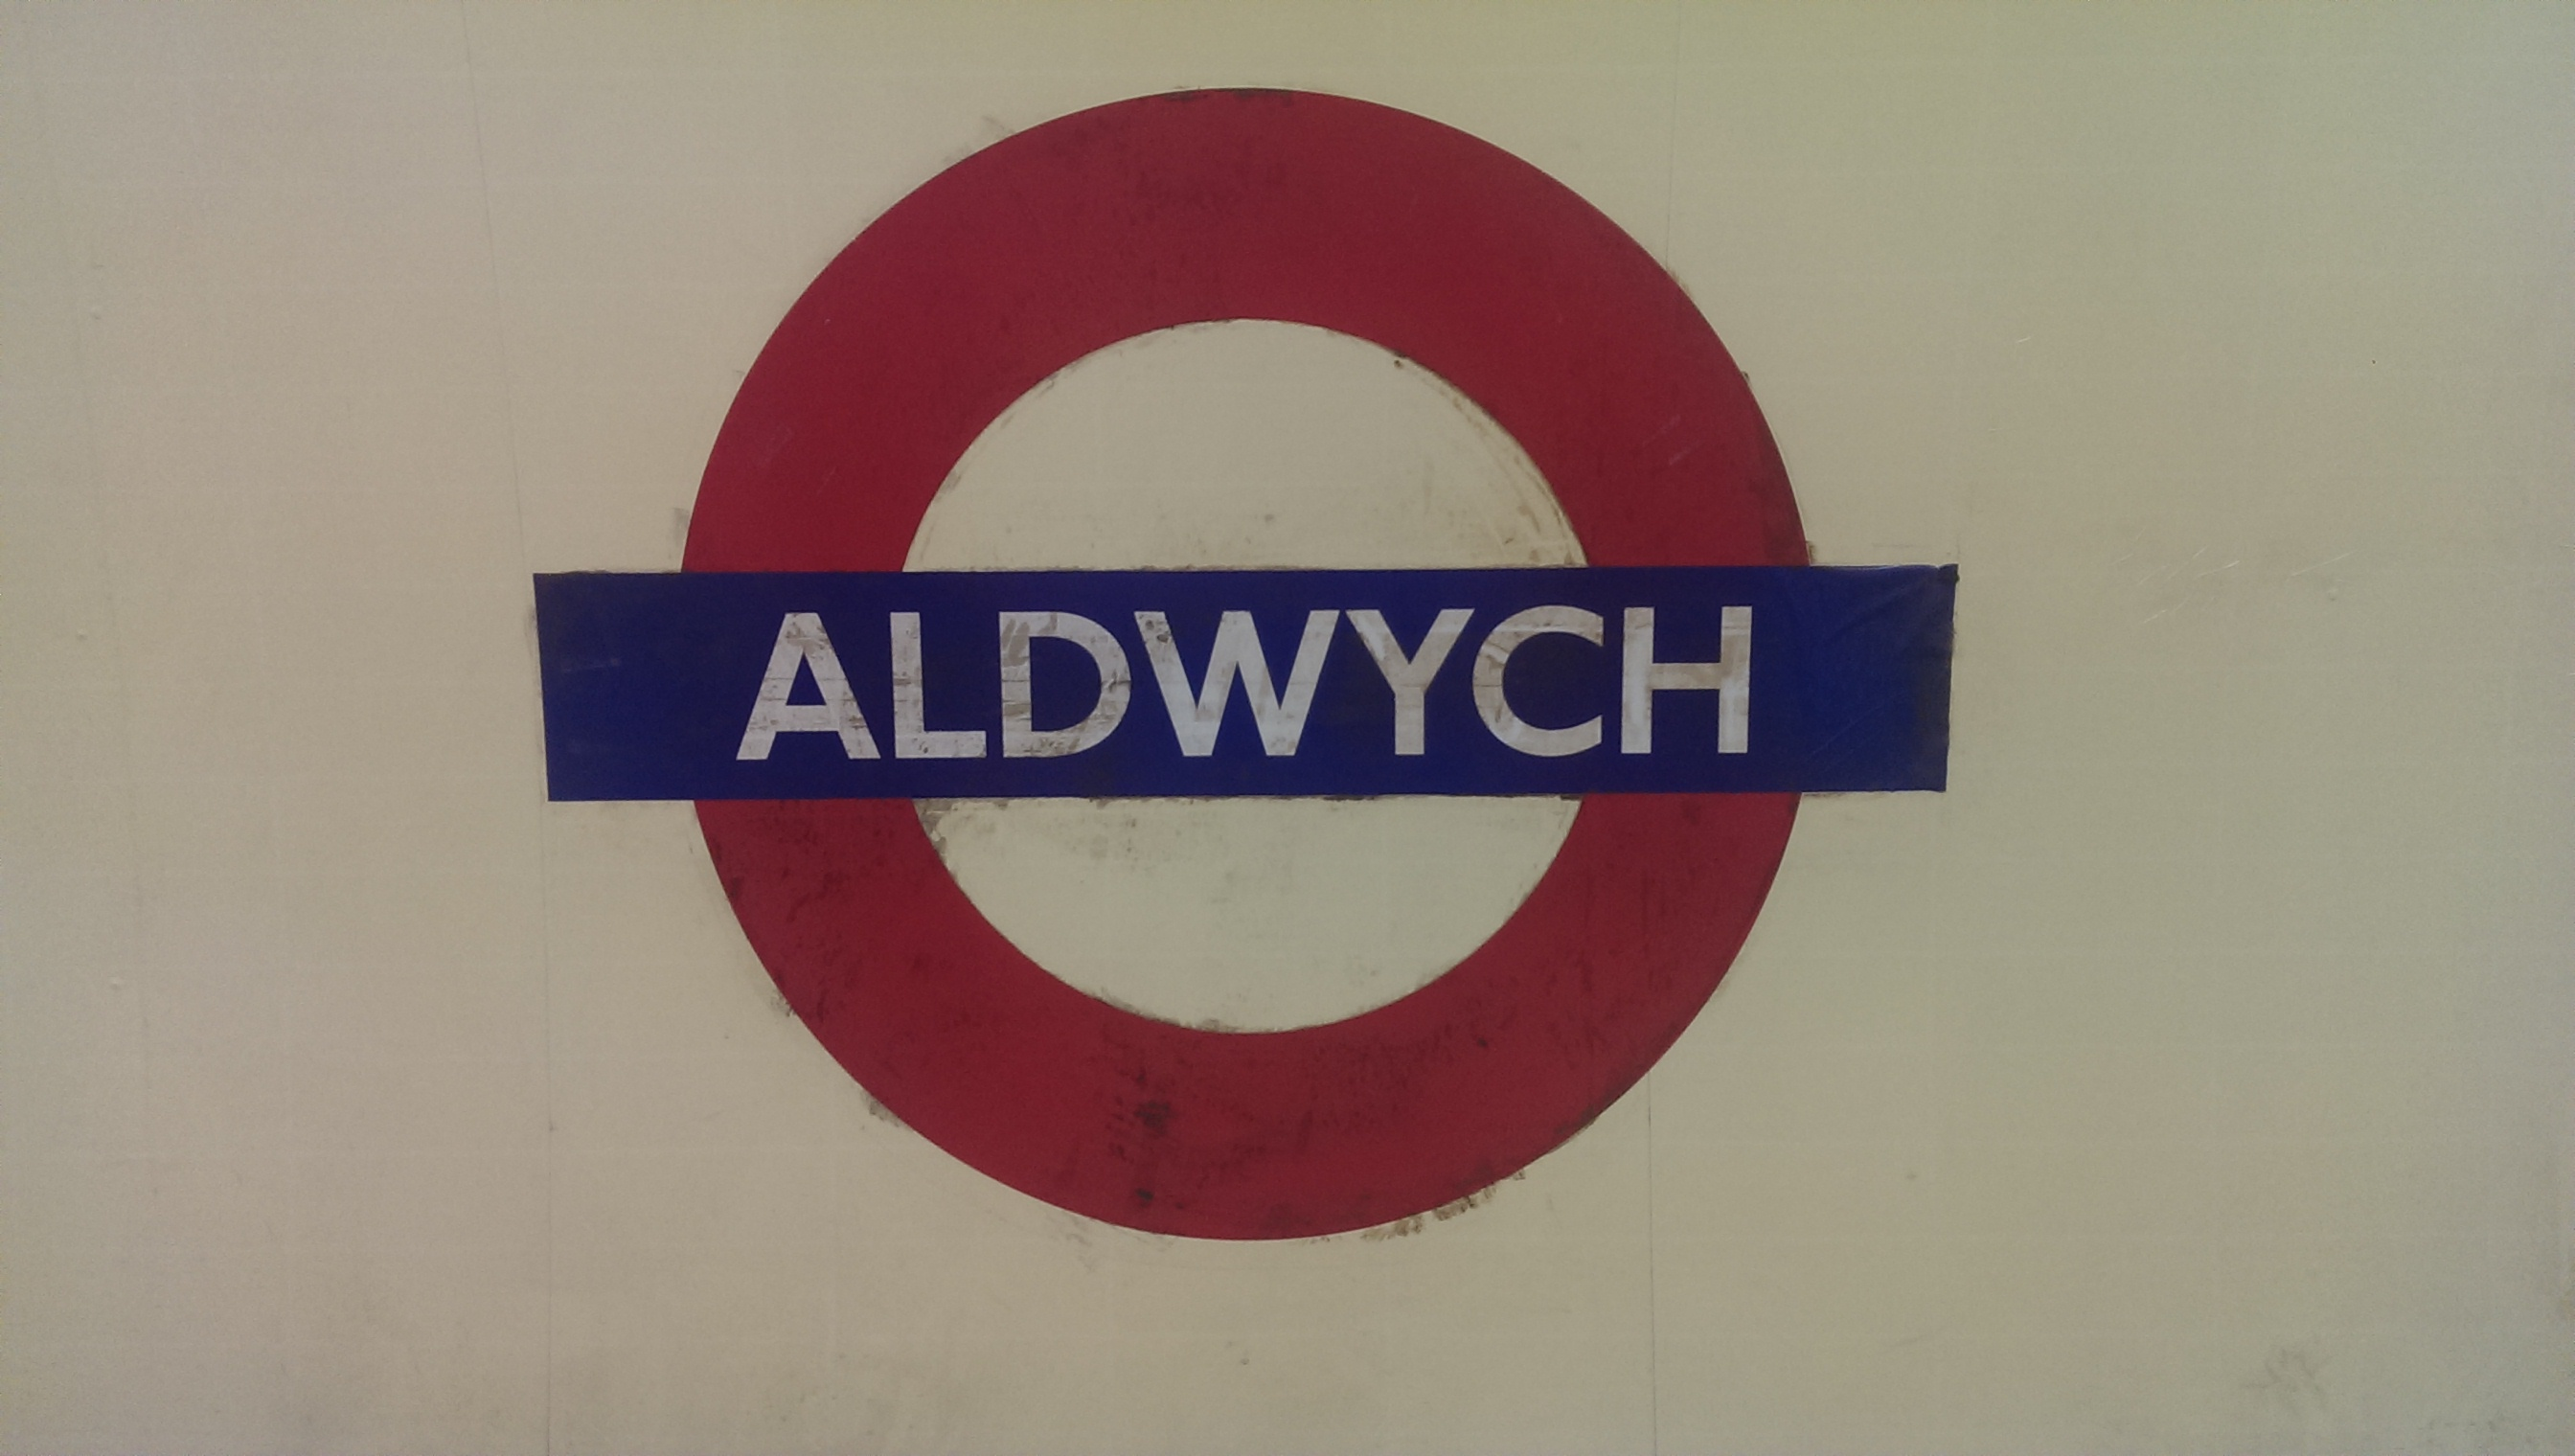 Gallery The Abandoned Aldwych Tube Station History Repeating